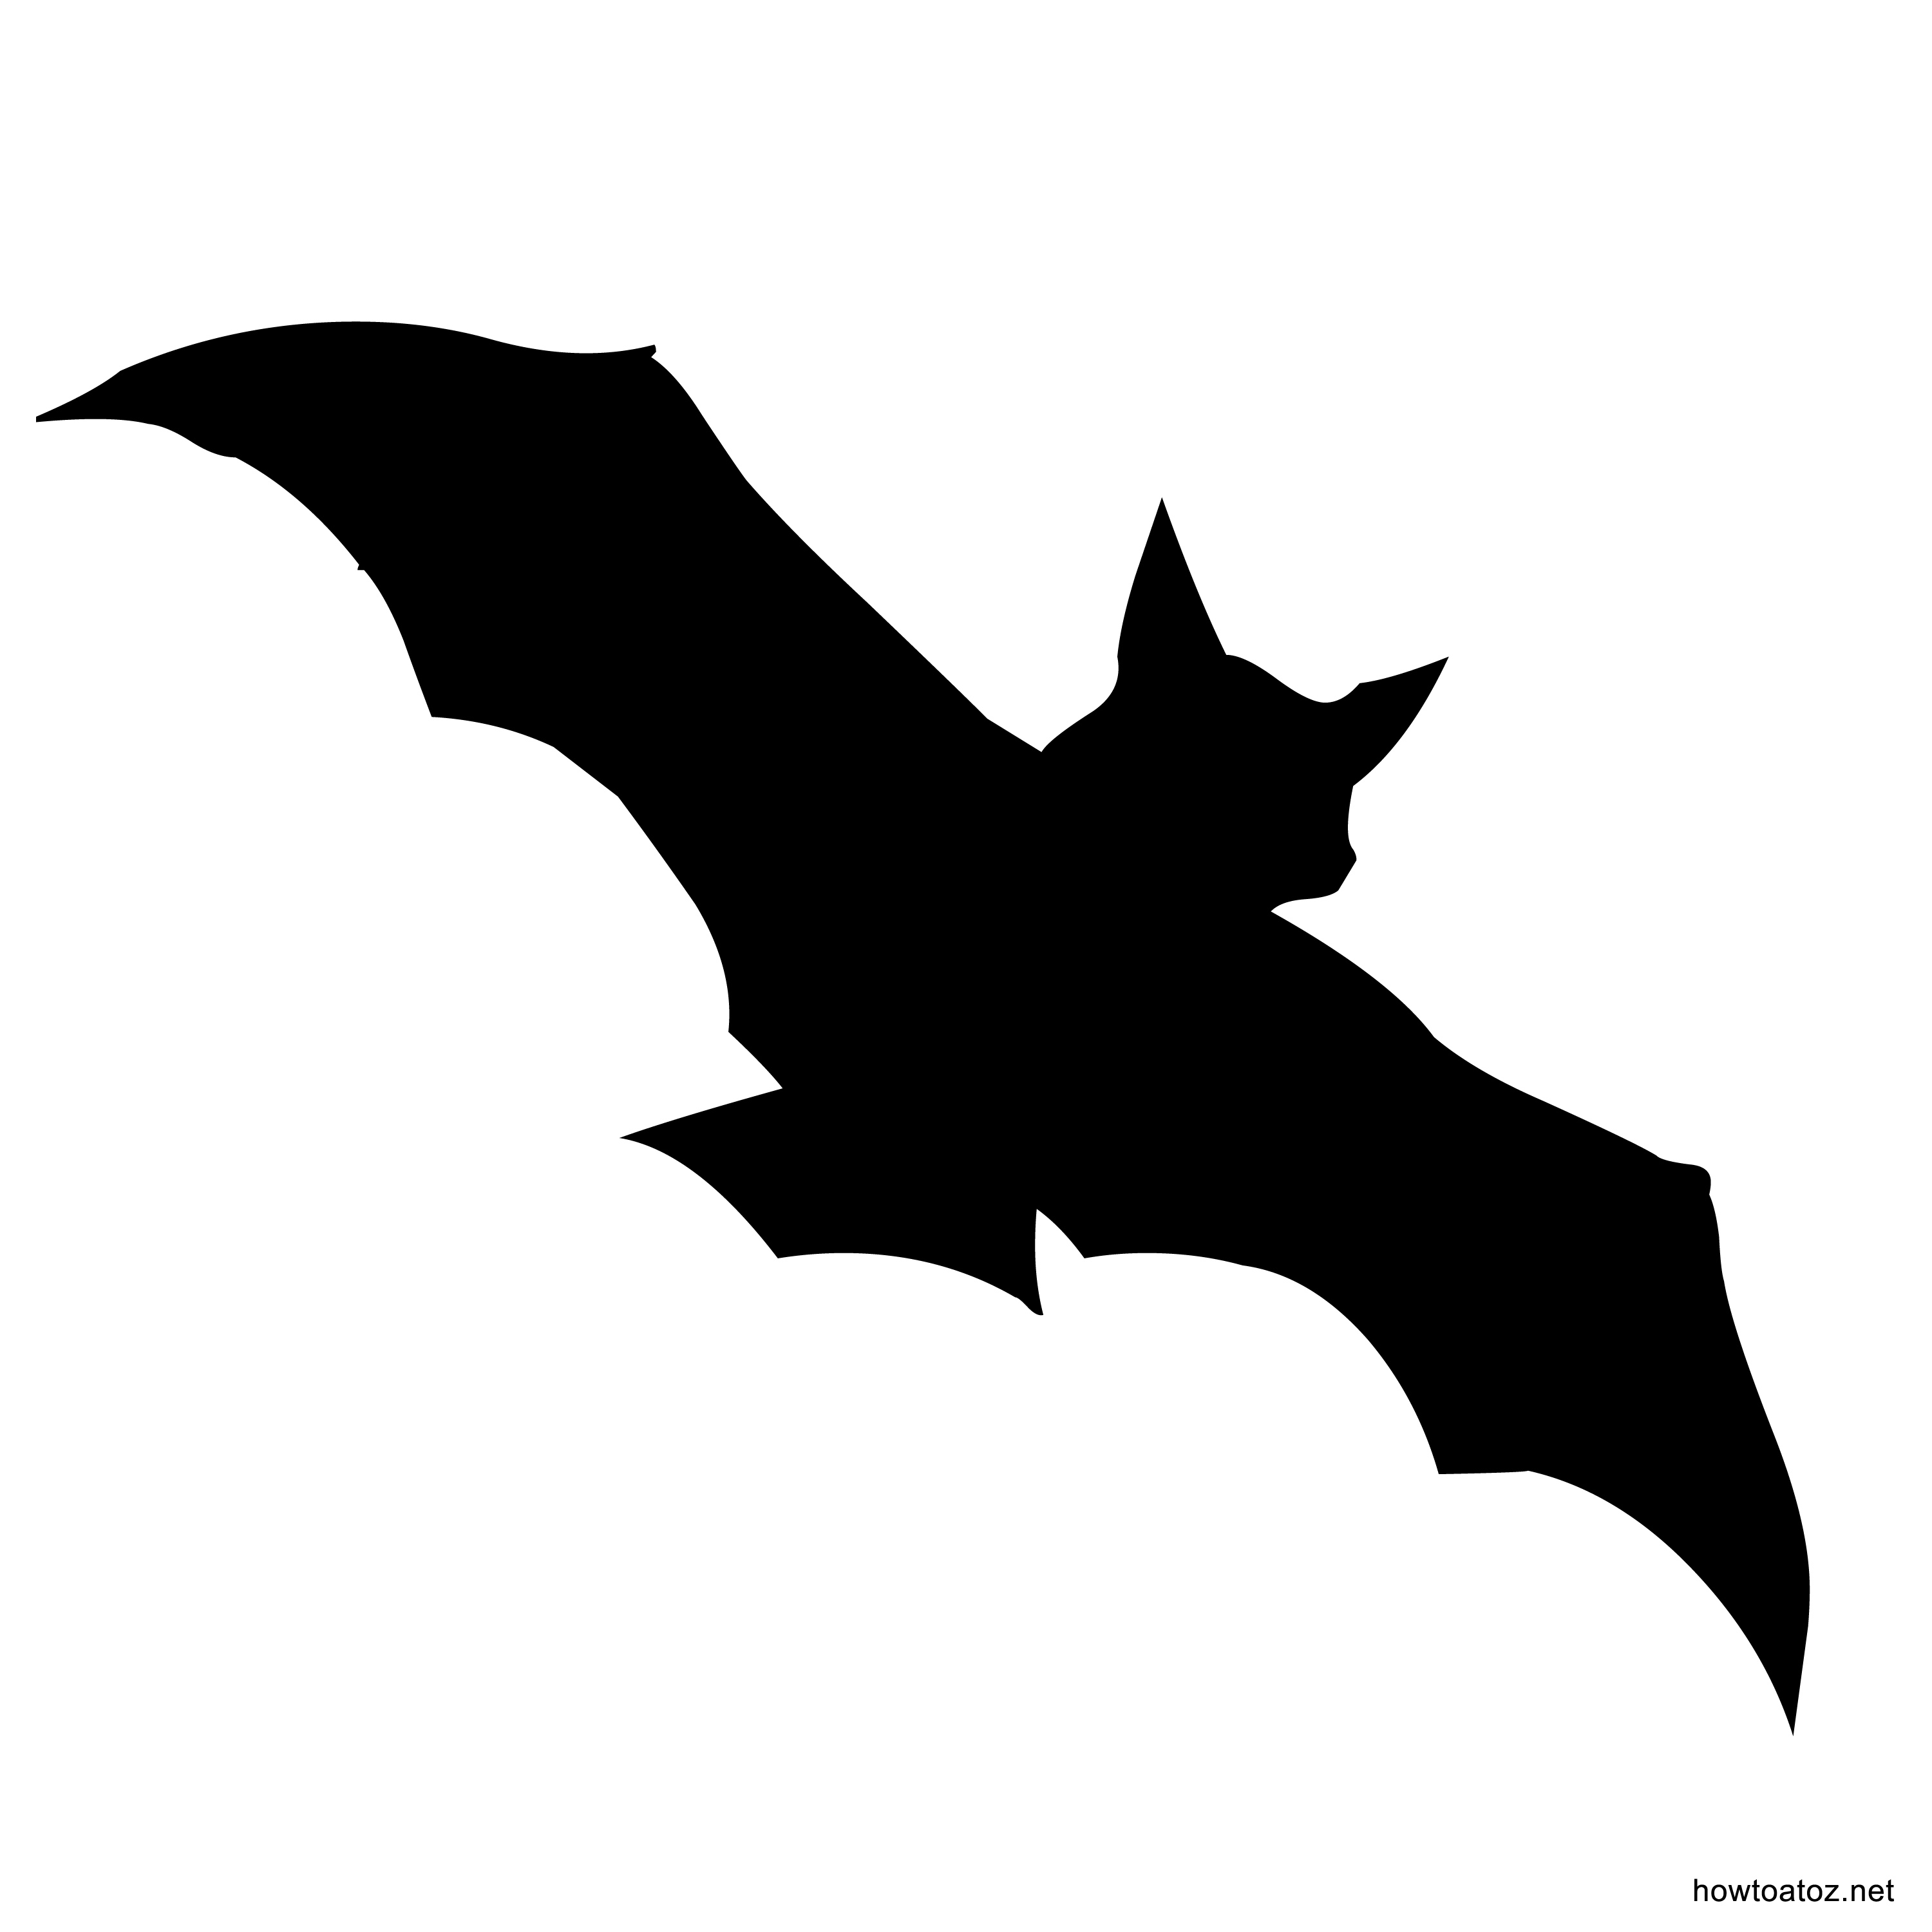 bats silhouette at getdrawings com free for personal use bats rh getdrawings com